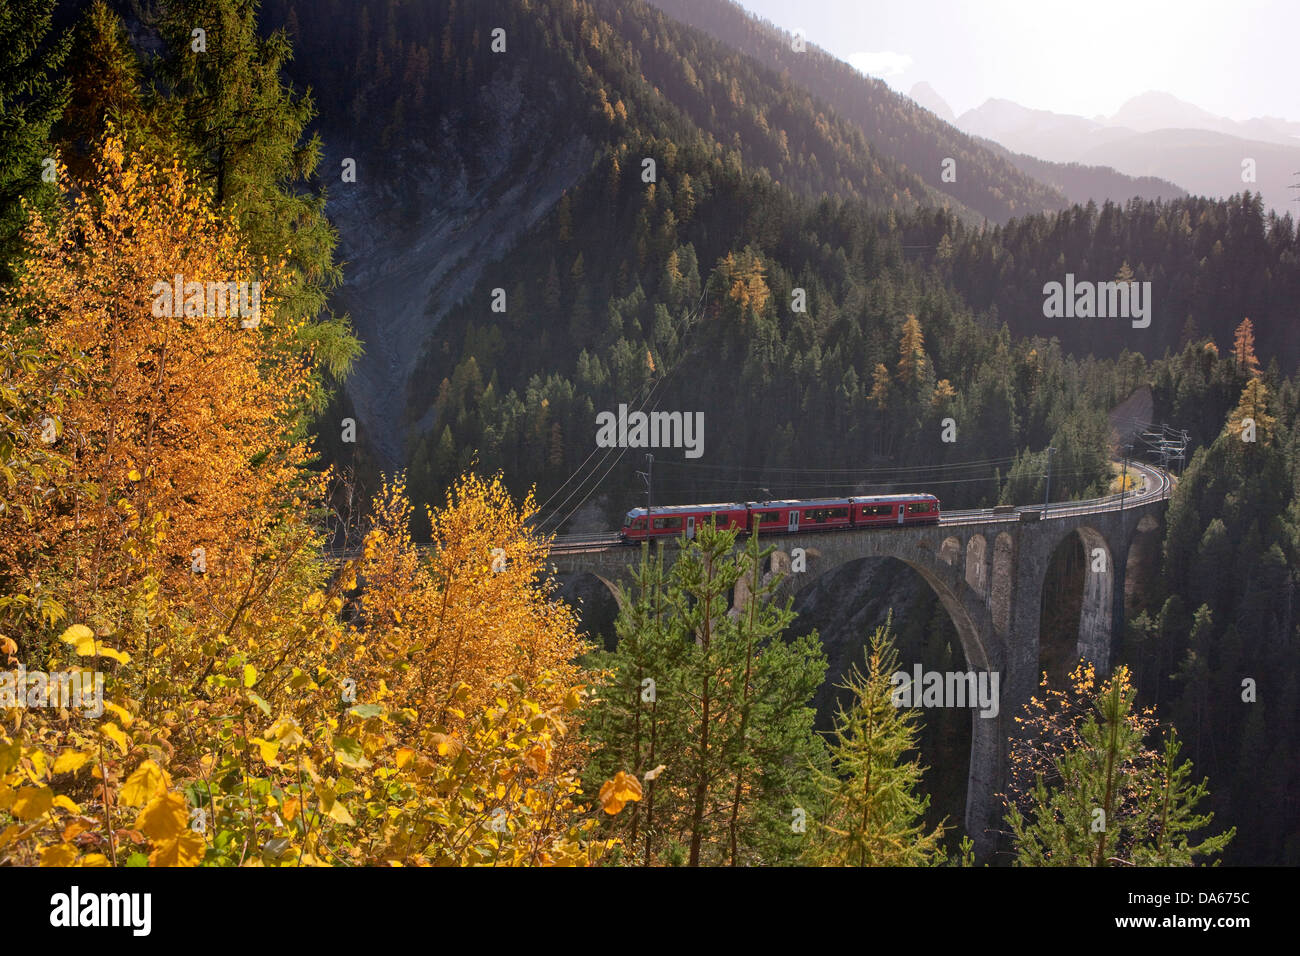 Rhaetian Railway, meadow viaduct, meadows, road, railway, train, railroad, bridge, autumn, wood, forest, canton, - Stock Image